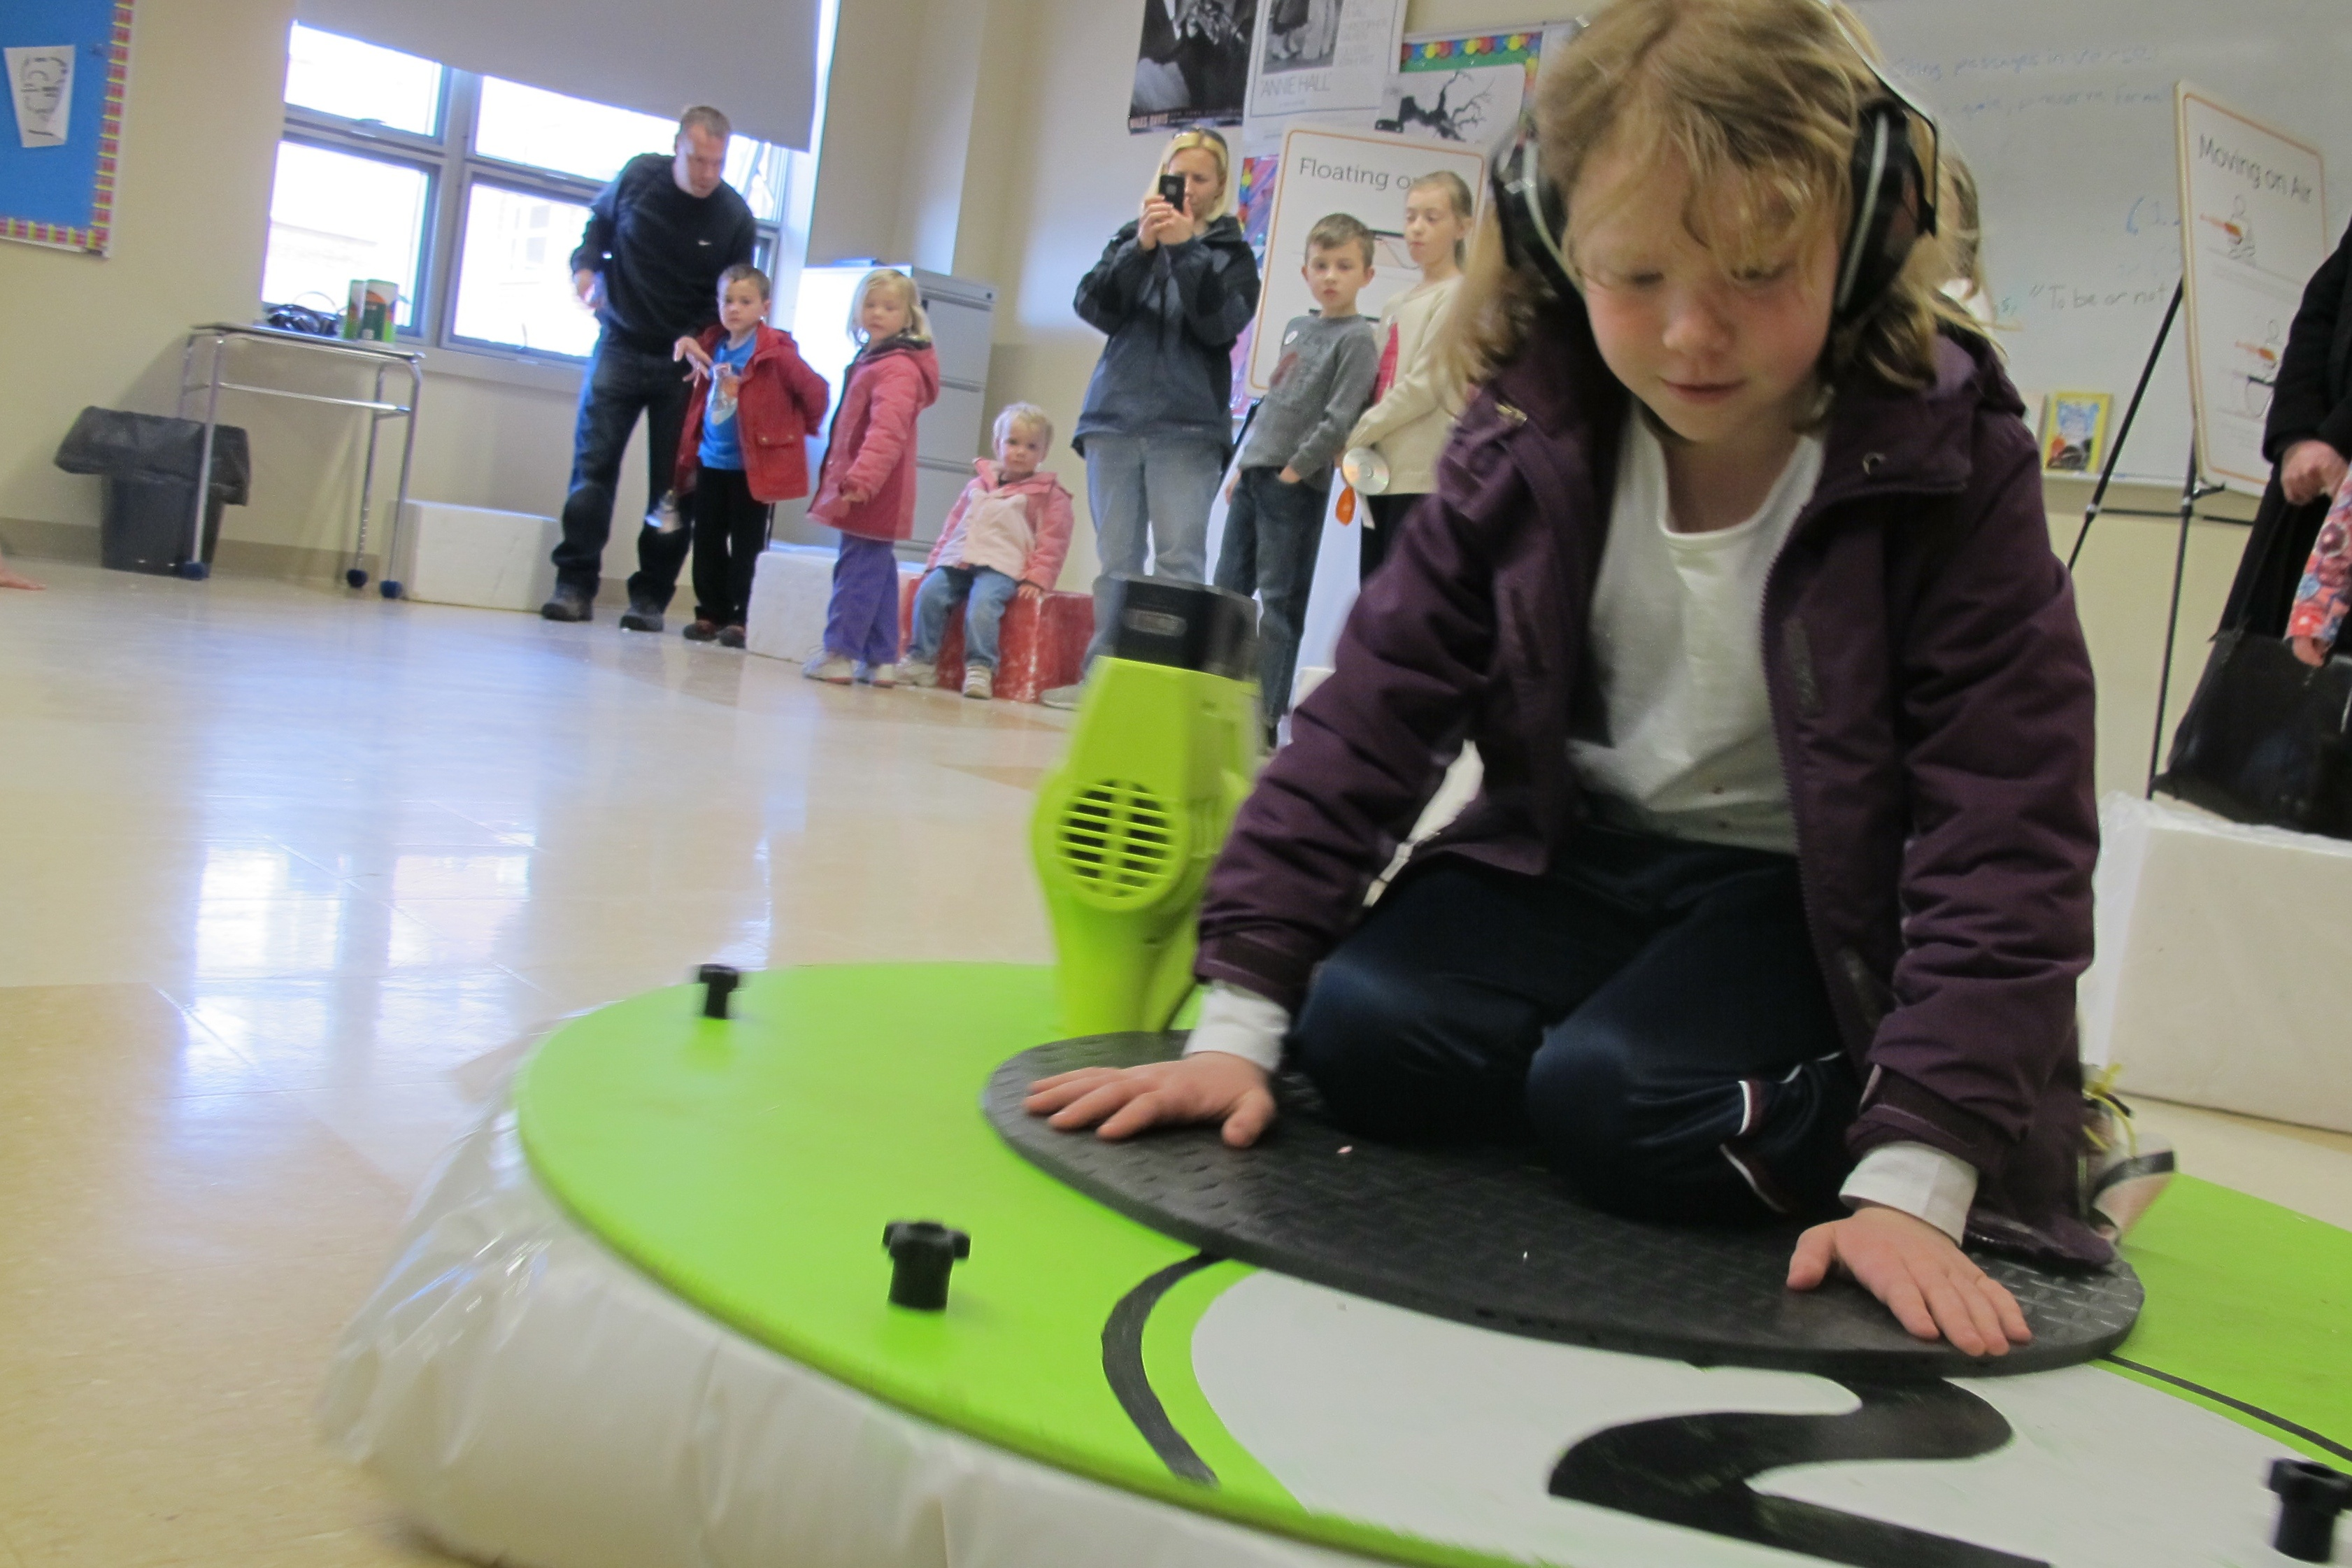 Let's Go for a Ride: Levitating + Learning at the Science Expo